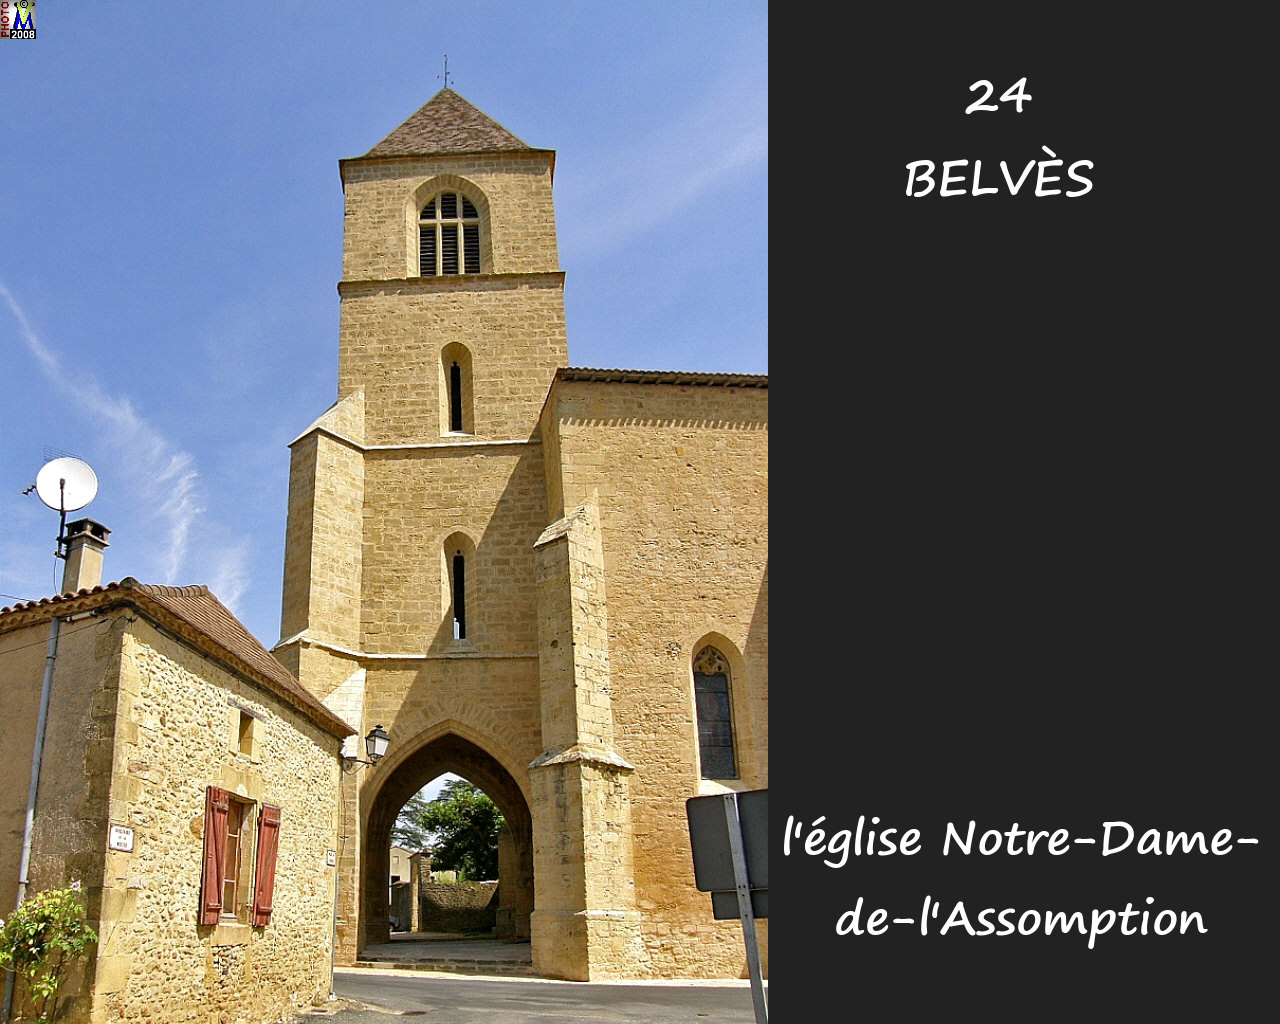 24BELVES_eglise_104.jpg